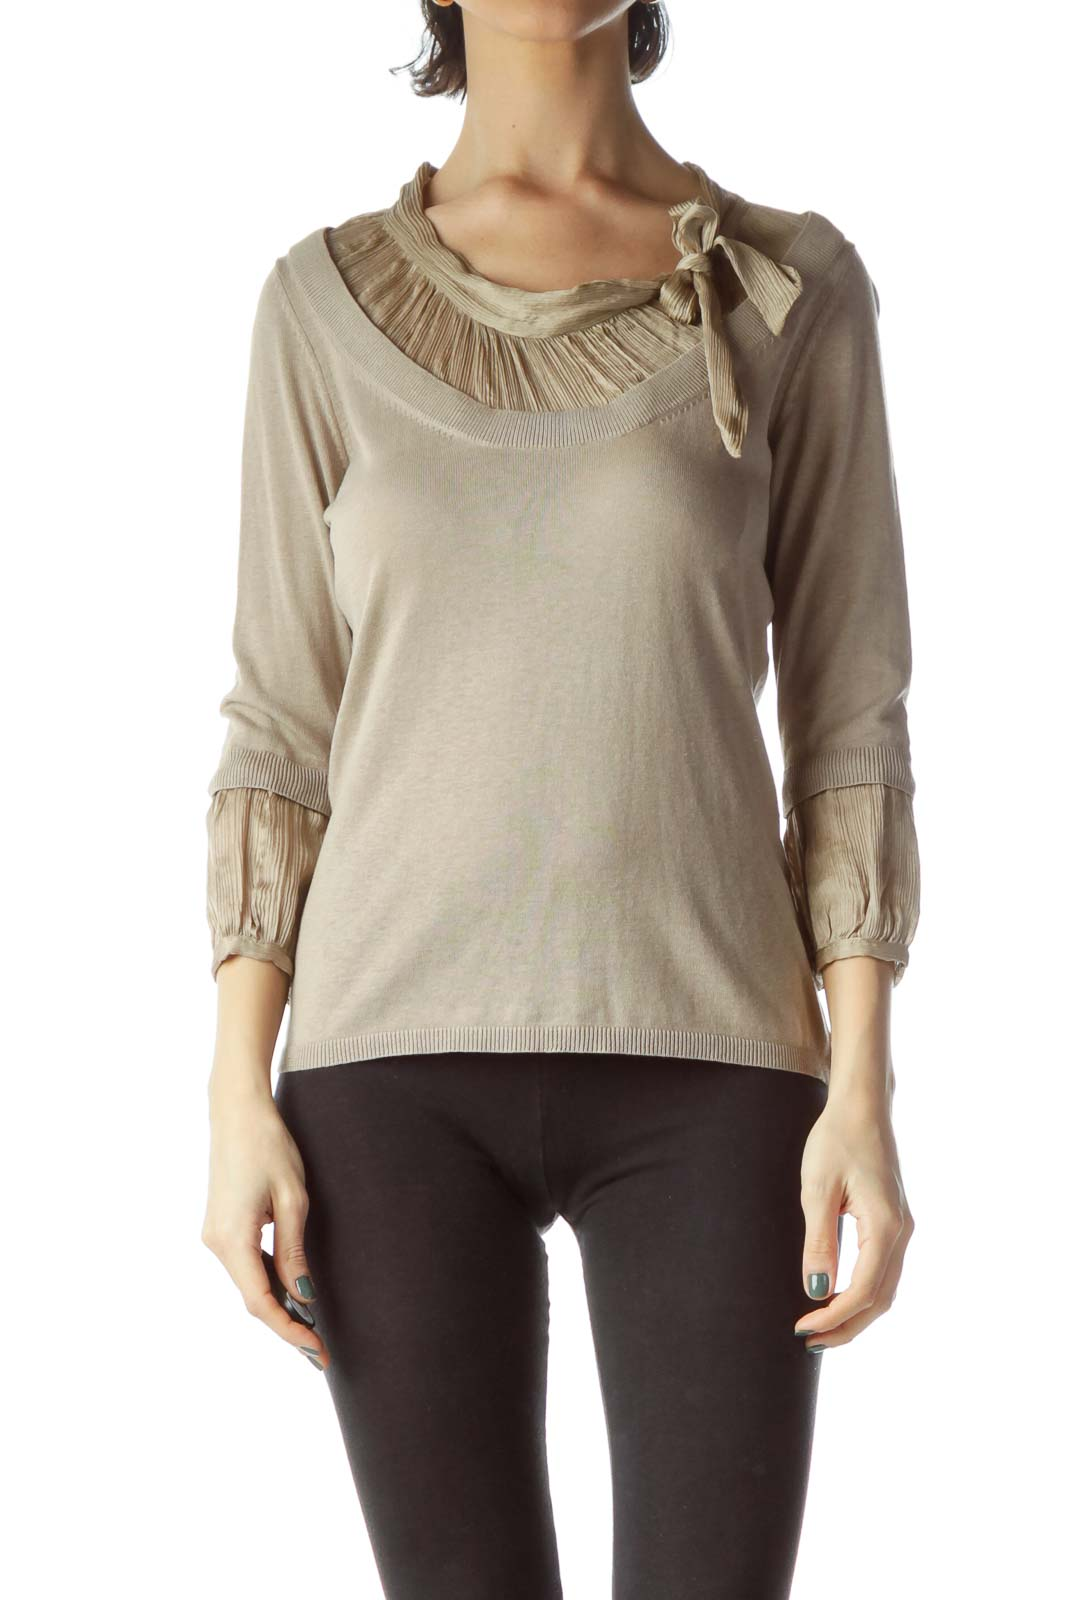 Beige Neck Bow 3/4 Sleeve Knit Top Front